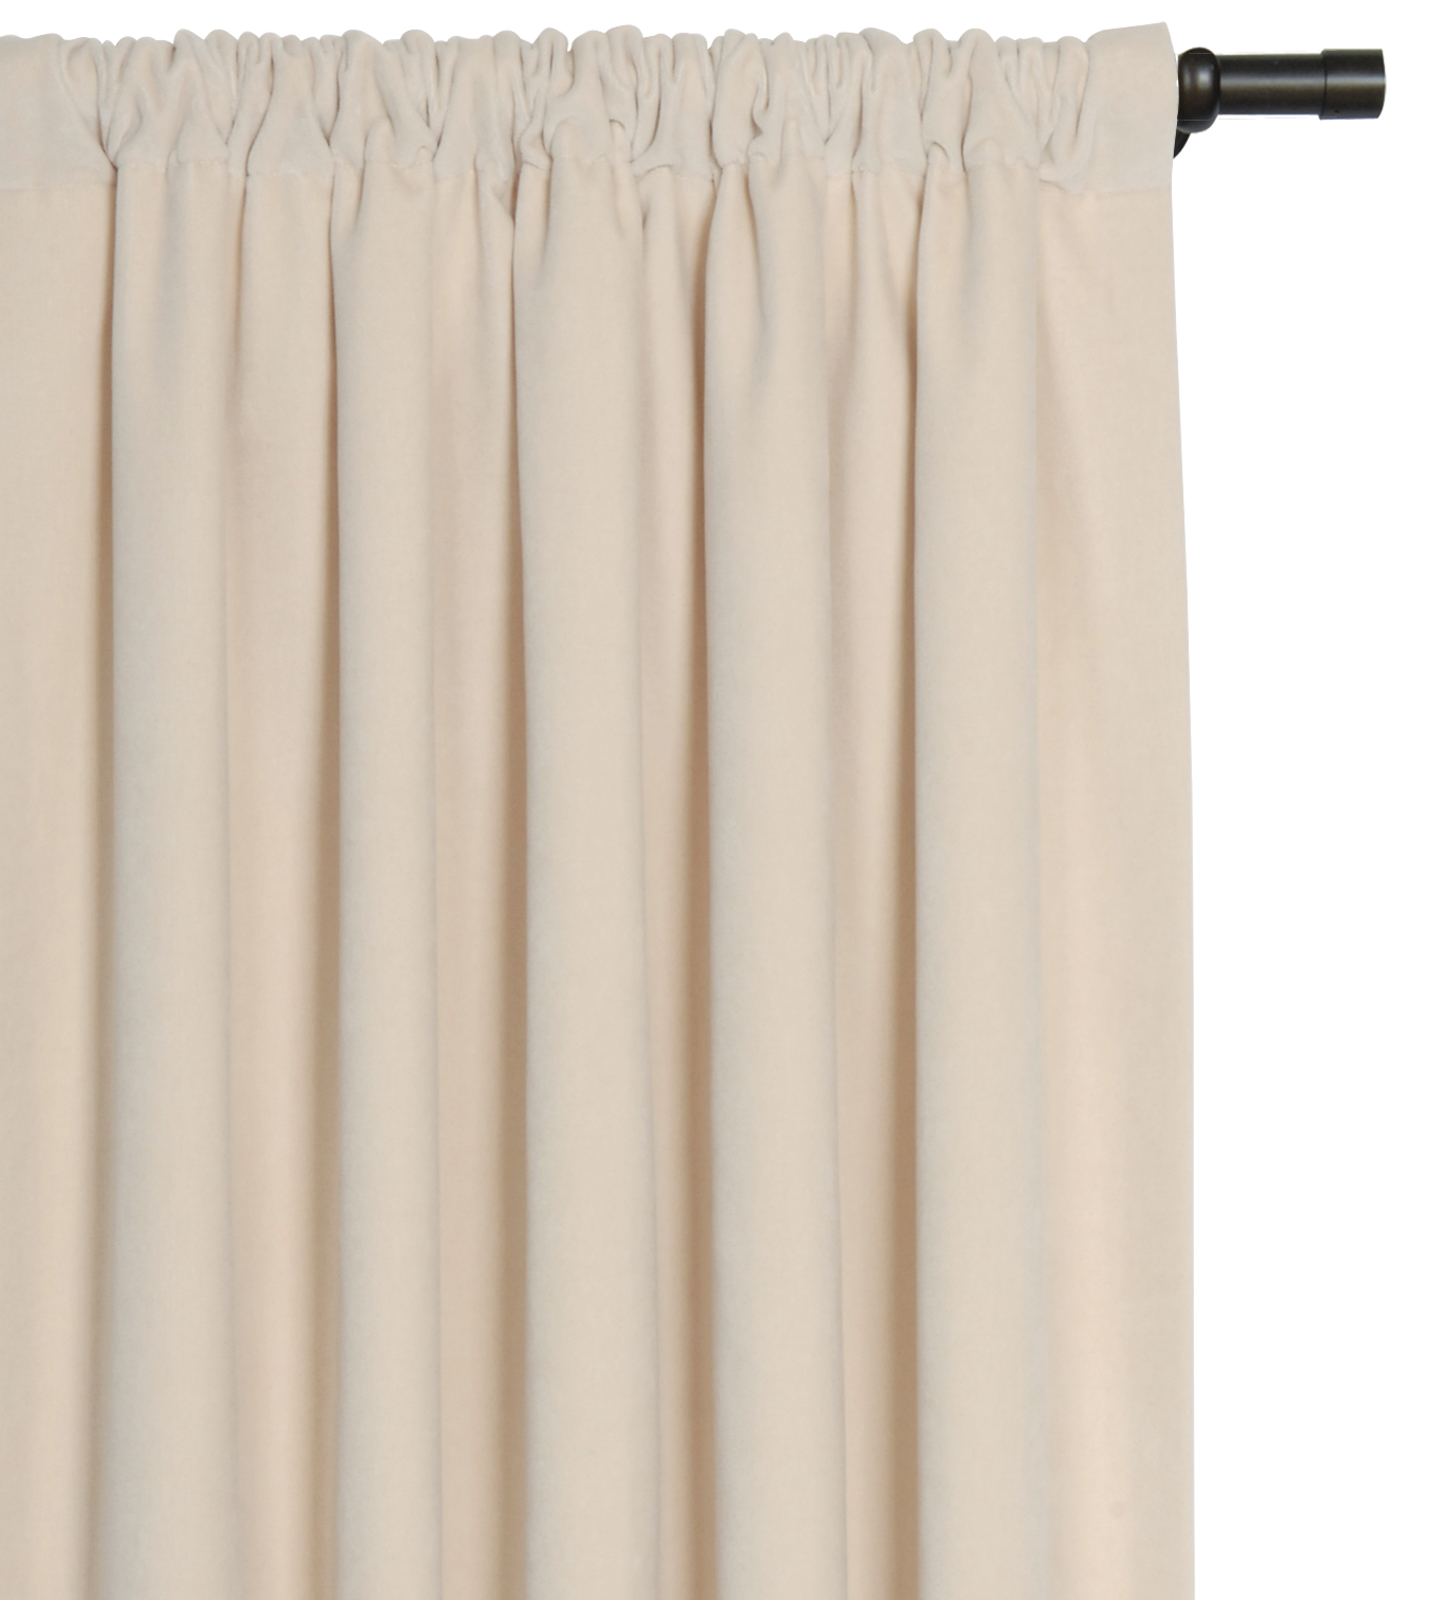 Scalamandre Maison by Eastern Accents - JACKSON IVORY CURTAIN PANEL